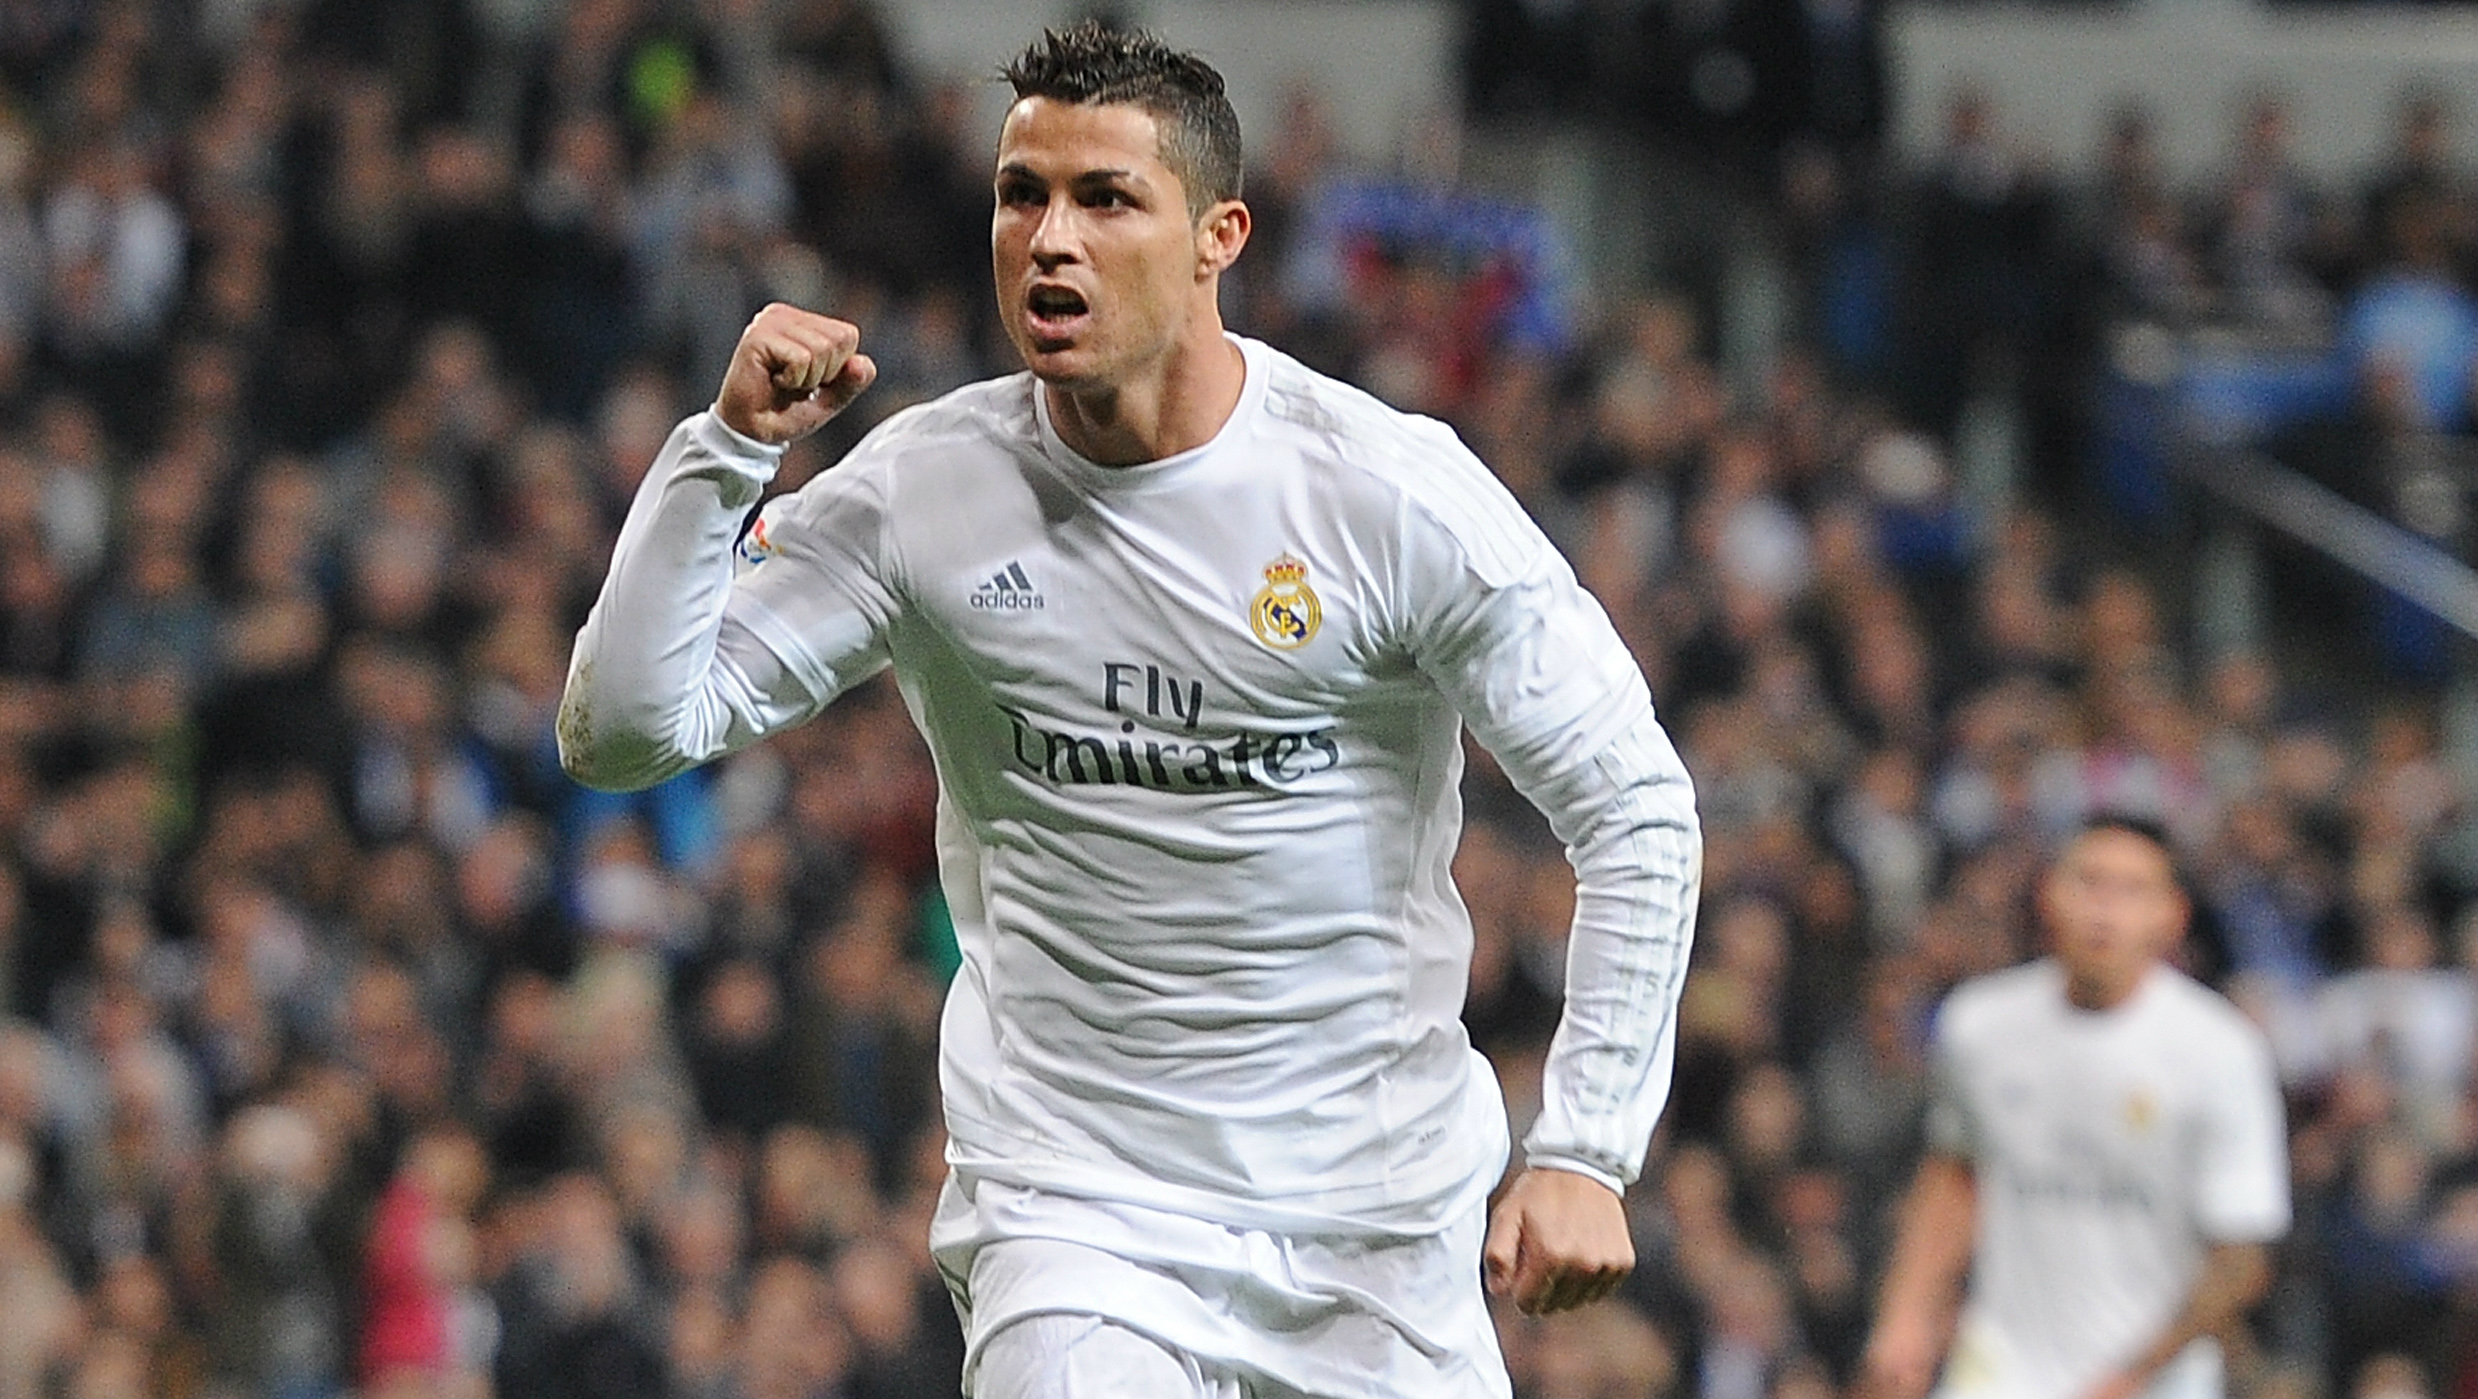 Cristiano Ronaldo Receives Lawsuit from Spanish Prosecutors for Alleged Tax Fraud